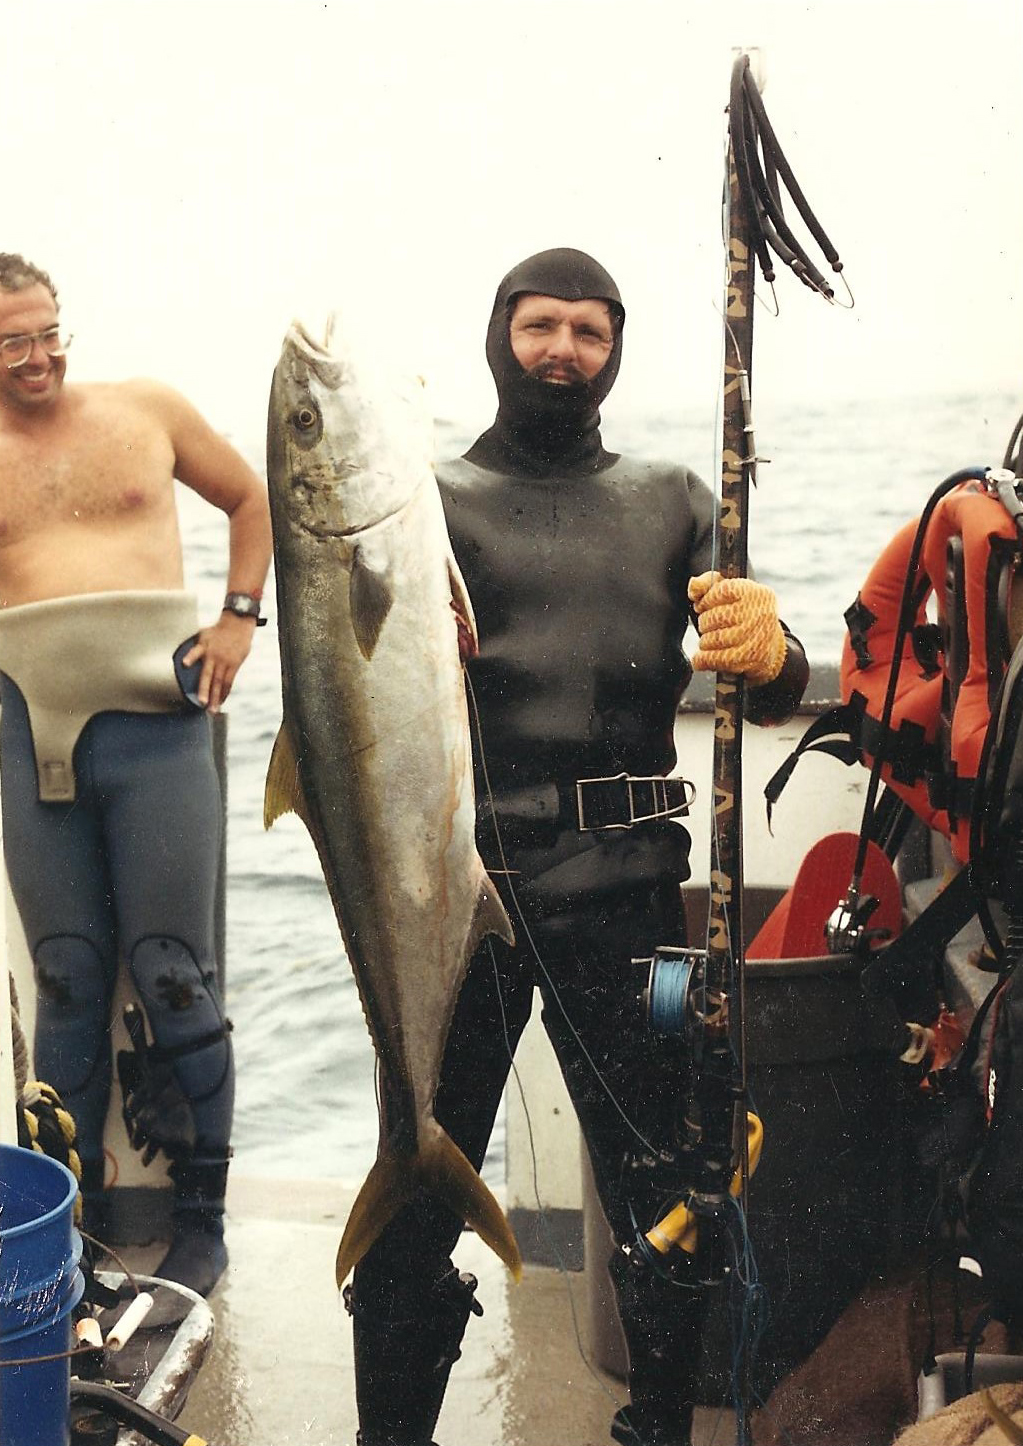 The story will be rich with the history of diving as seen in this classic Yellowtail shot.